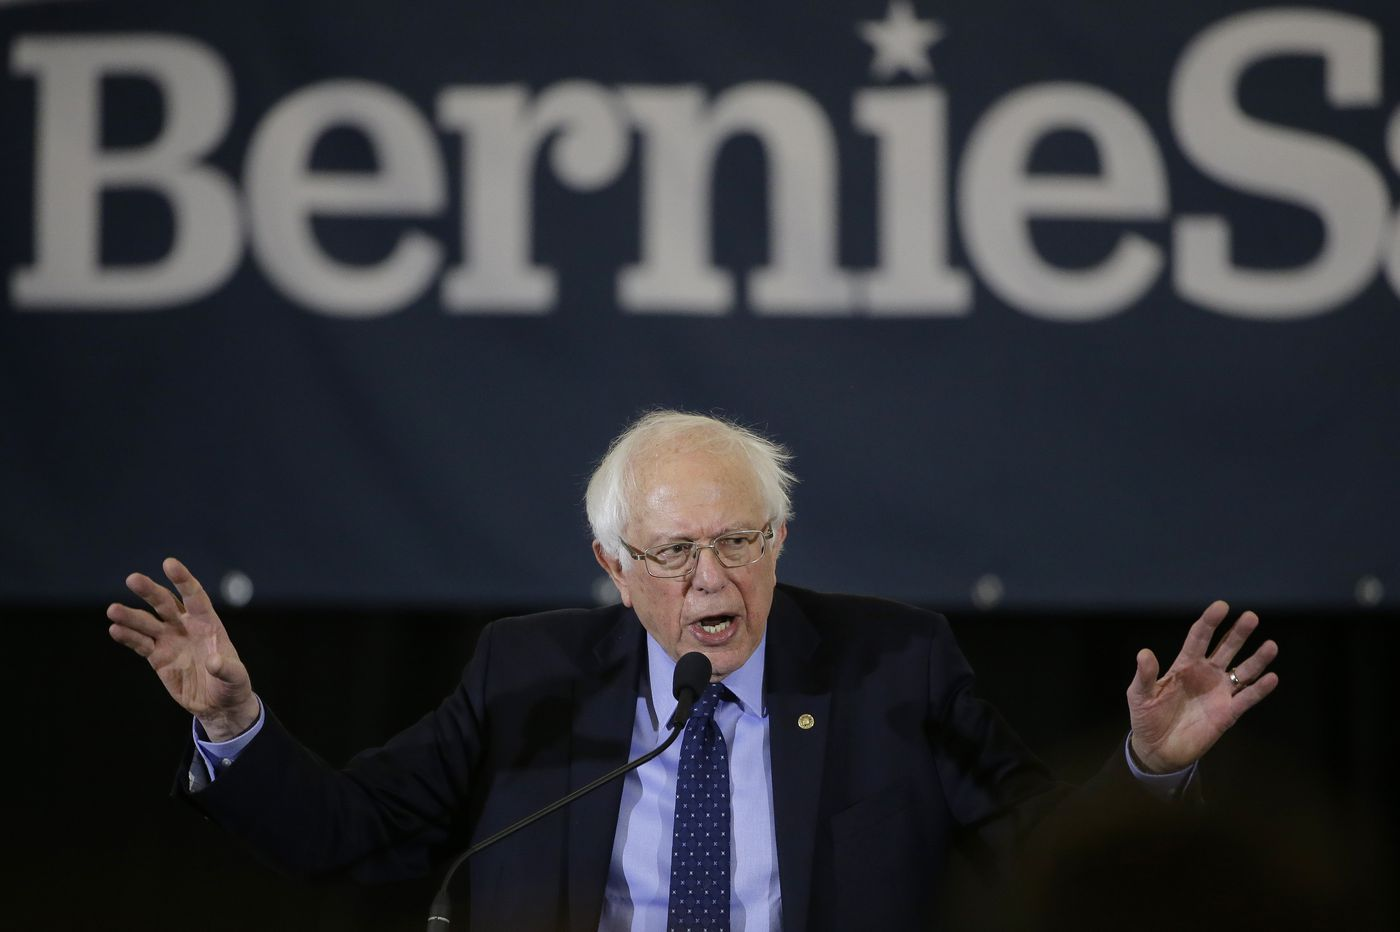 Bernie Sanders Releases 10 Years of Tax Returns